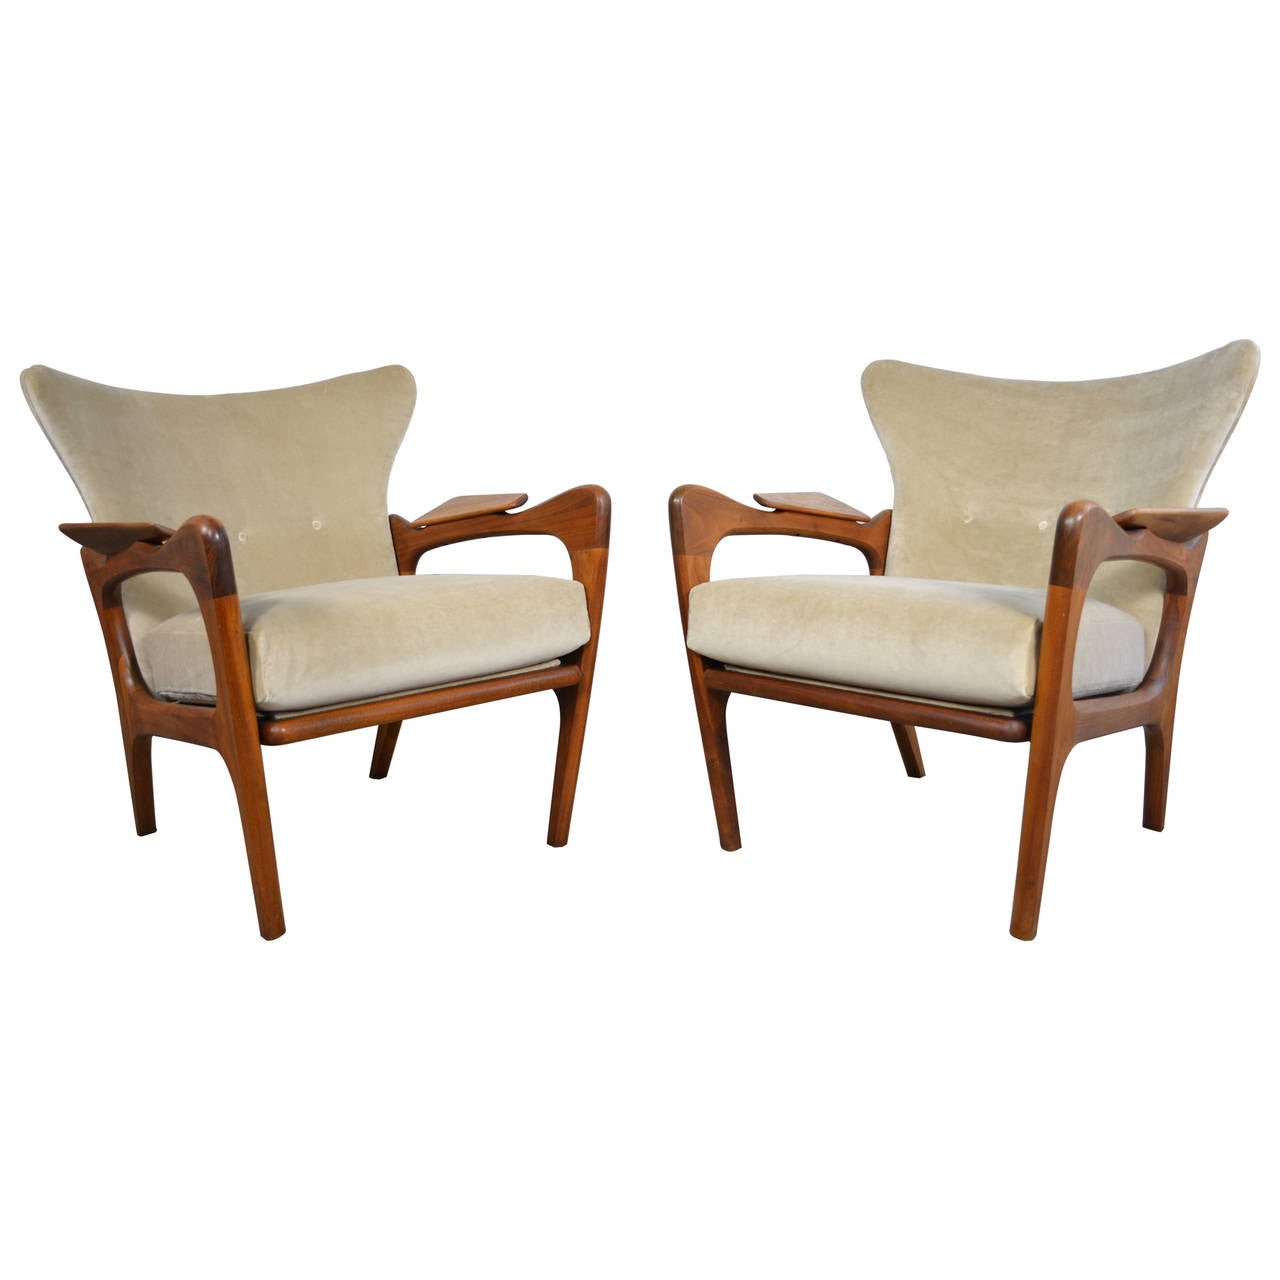 adrian pearsall lounge chair modtot high sculptural pair of wingback chairs